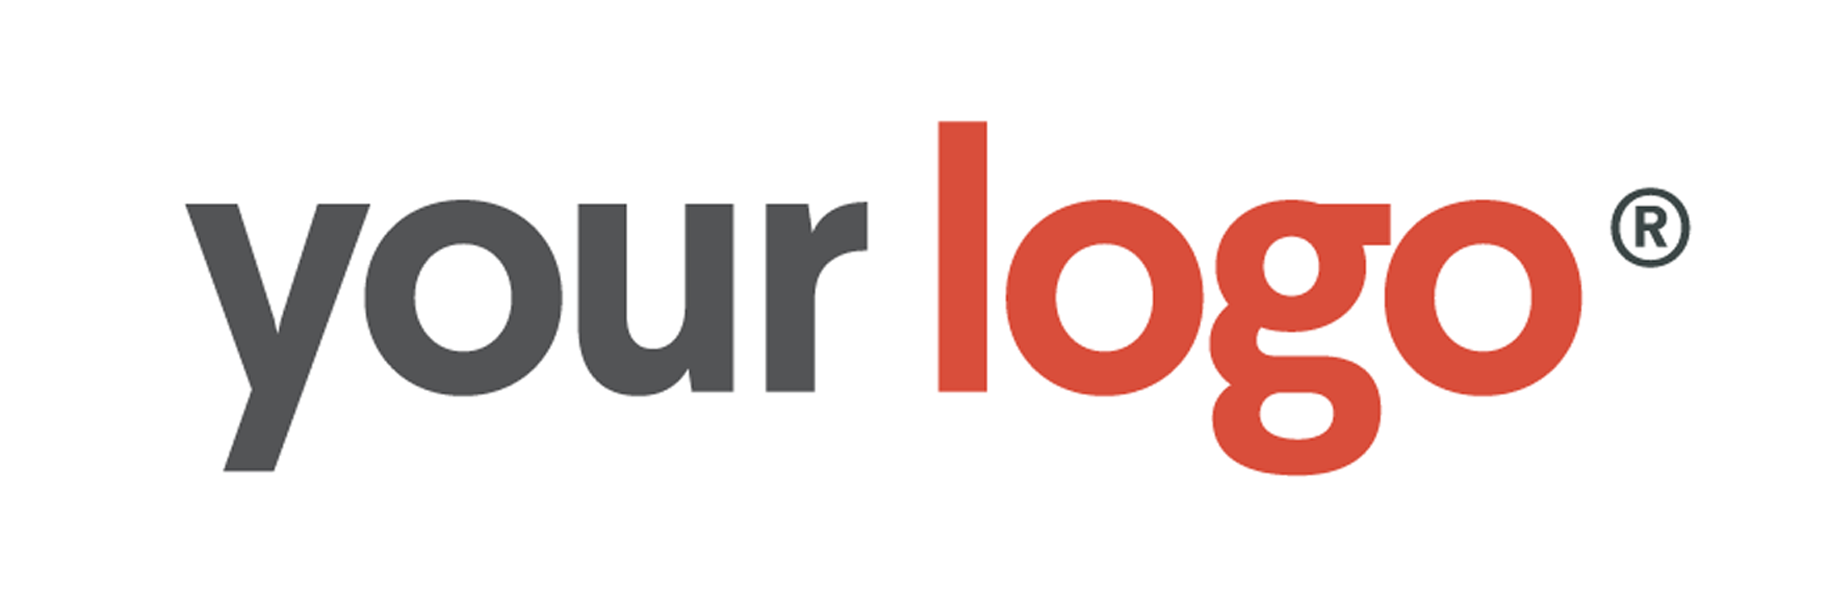 Image result for yourlogo